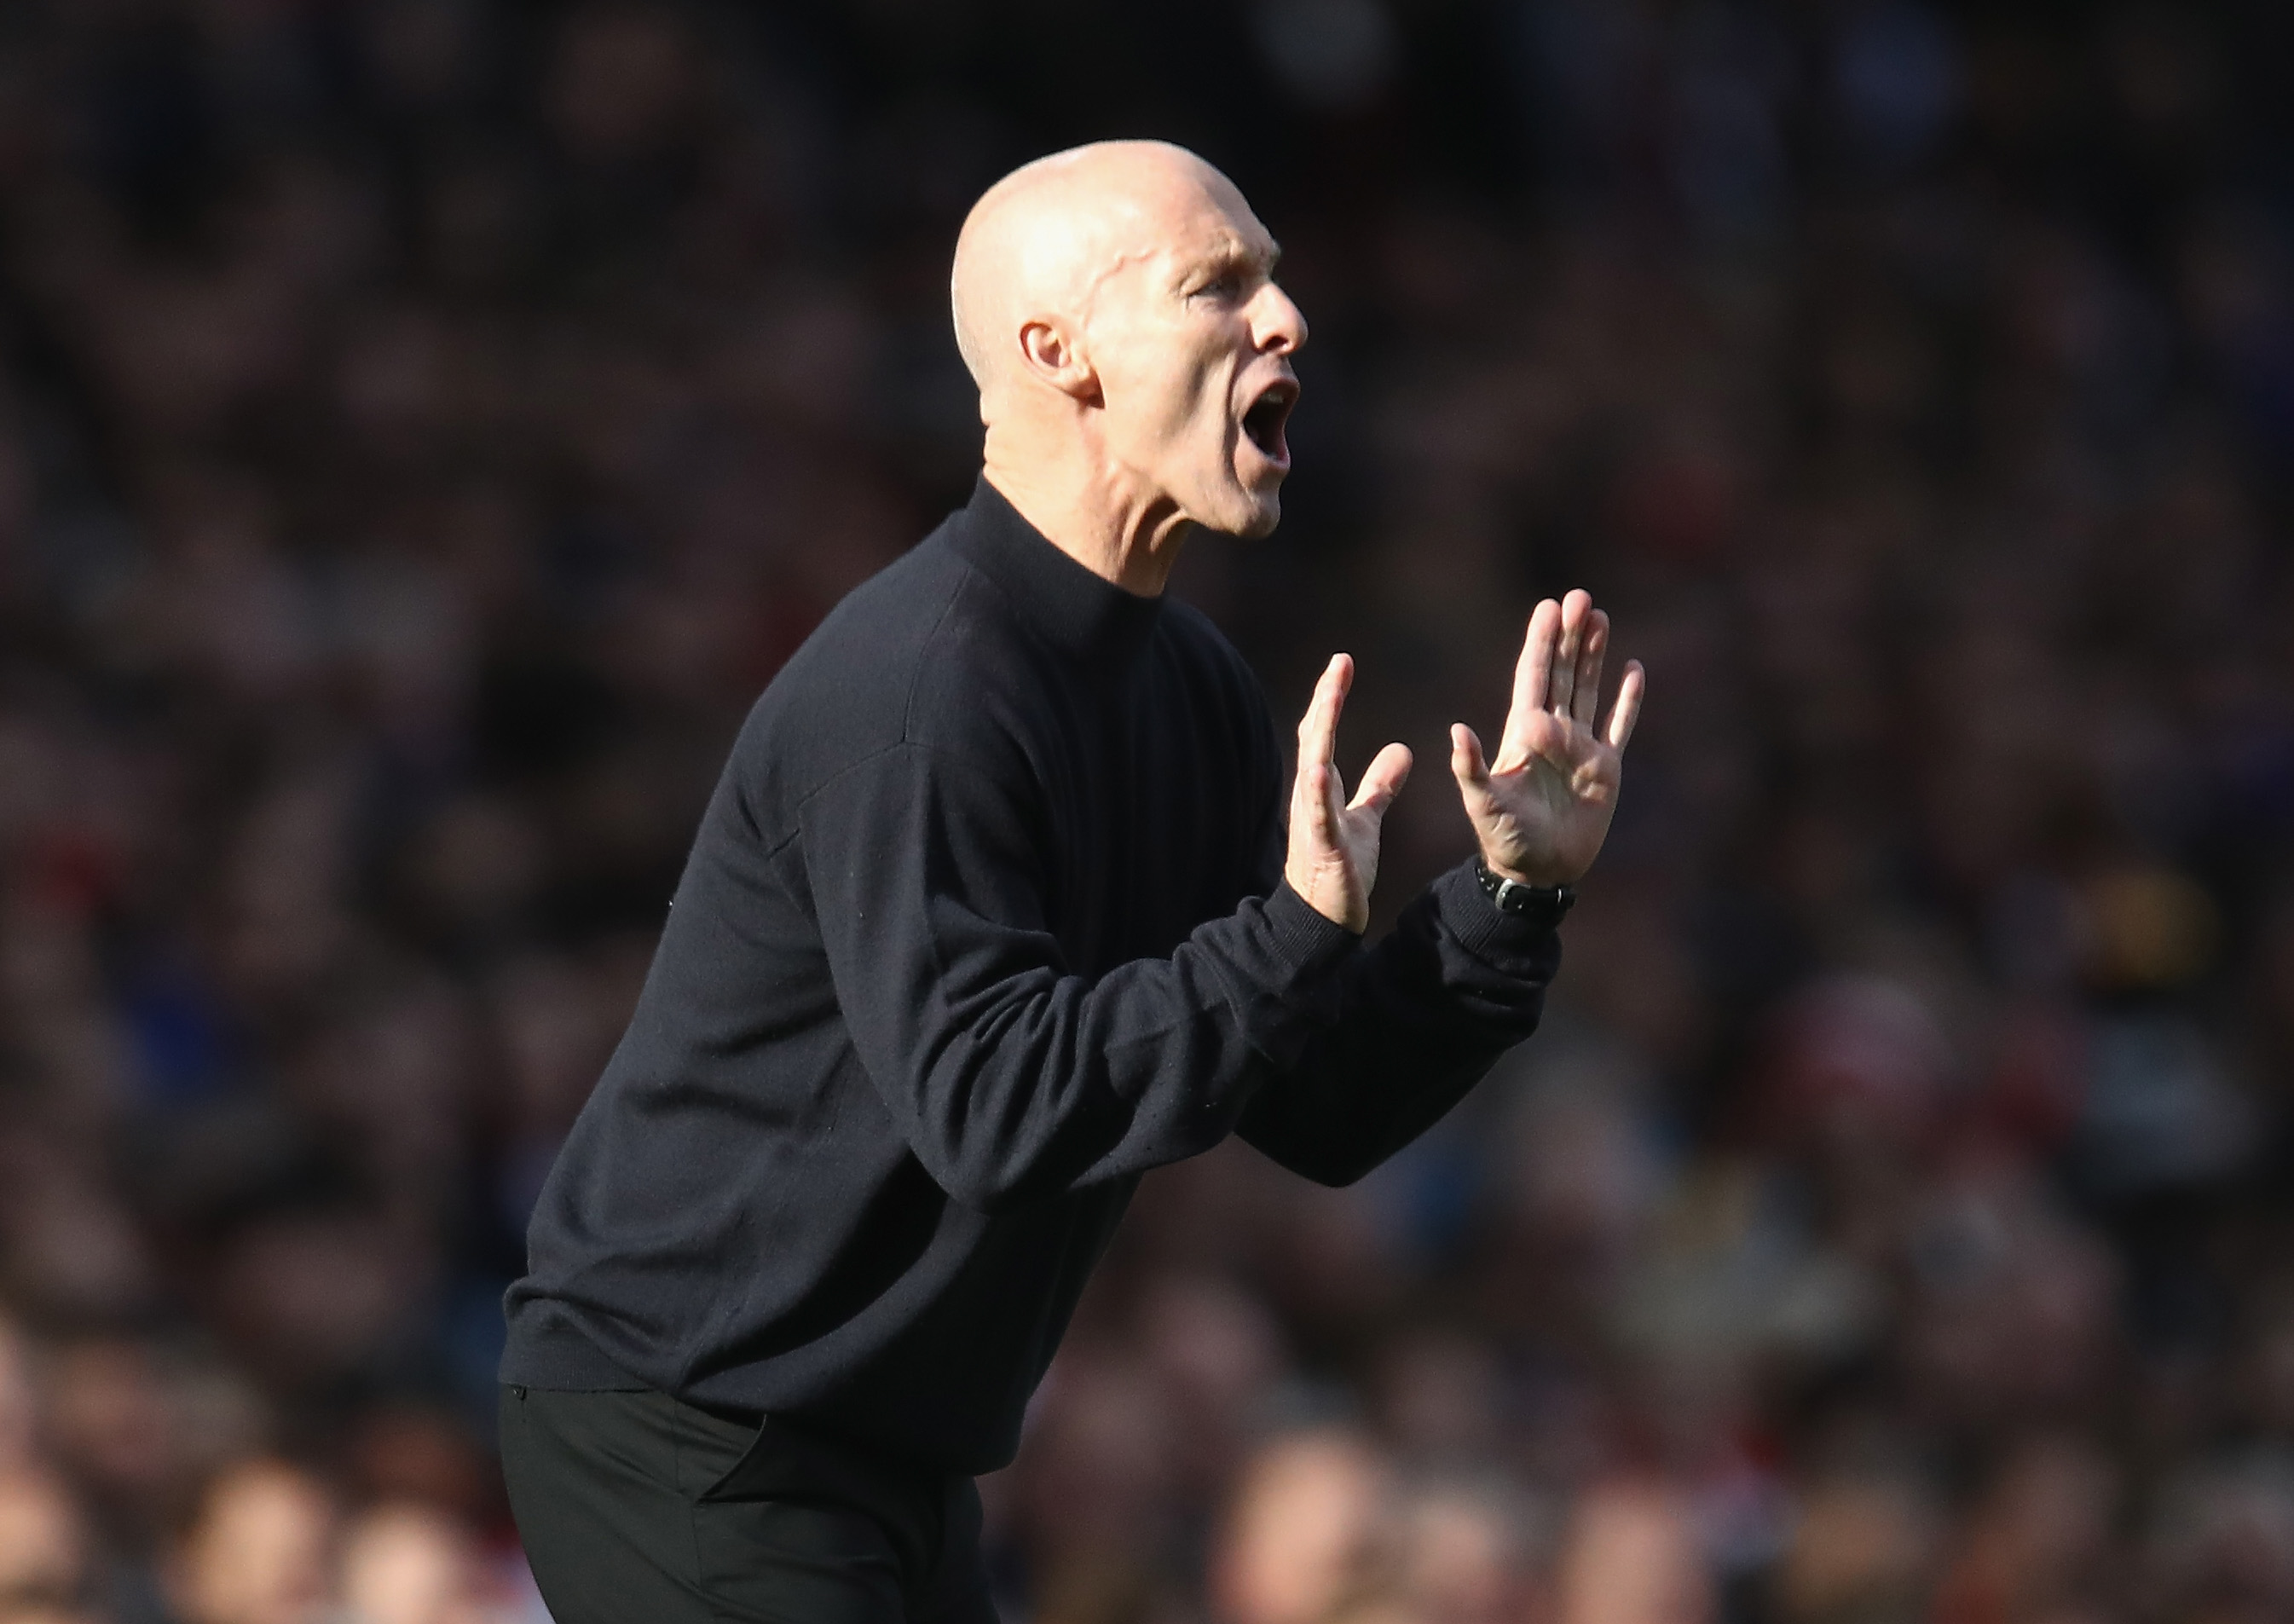 LONDON, ENGLAND - OCTOBER 15:  Swansea City manager Bob Bradley gives instructions during the Premier League match between Arsenal and Swansea City at Emirates Stadium on October 15, 2016 in London, England.  (Photo by Julian Finney/Getty Images)